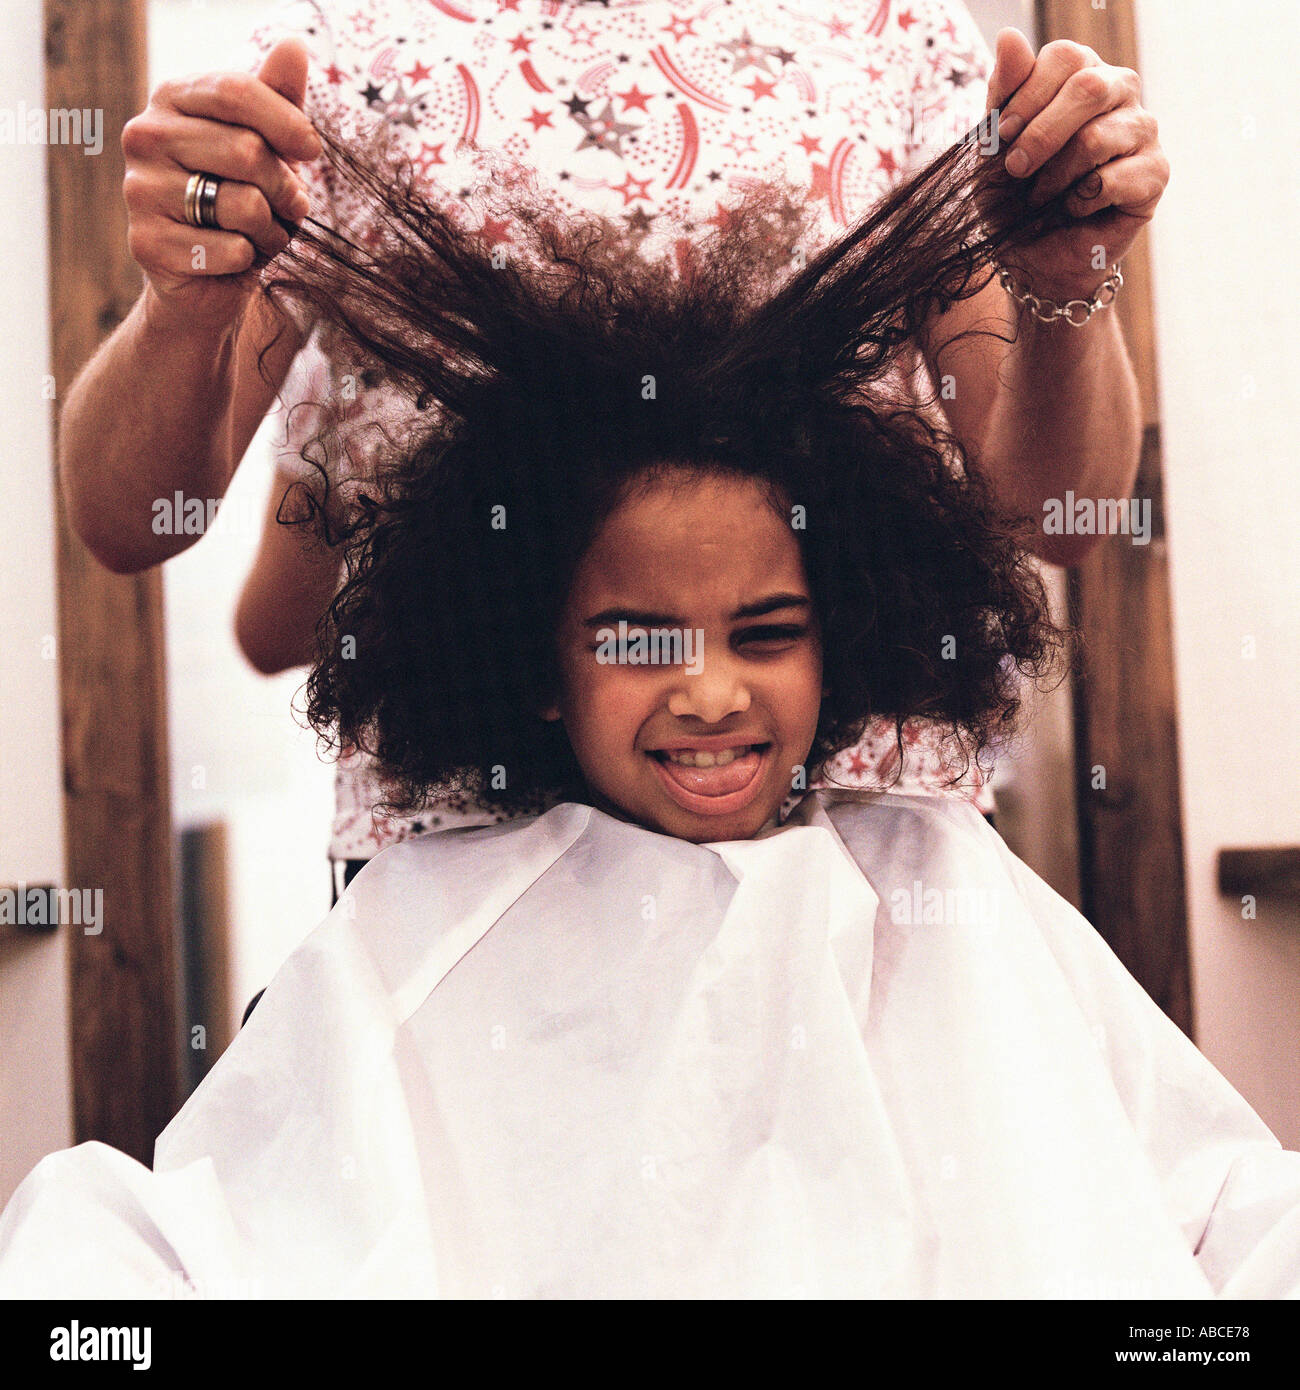 Girl at hairdressers - Stock Image